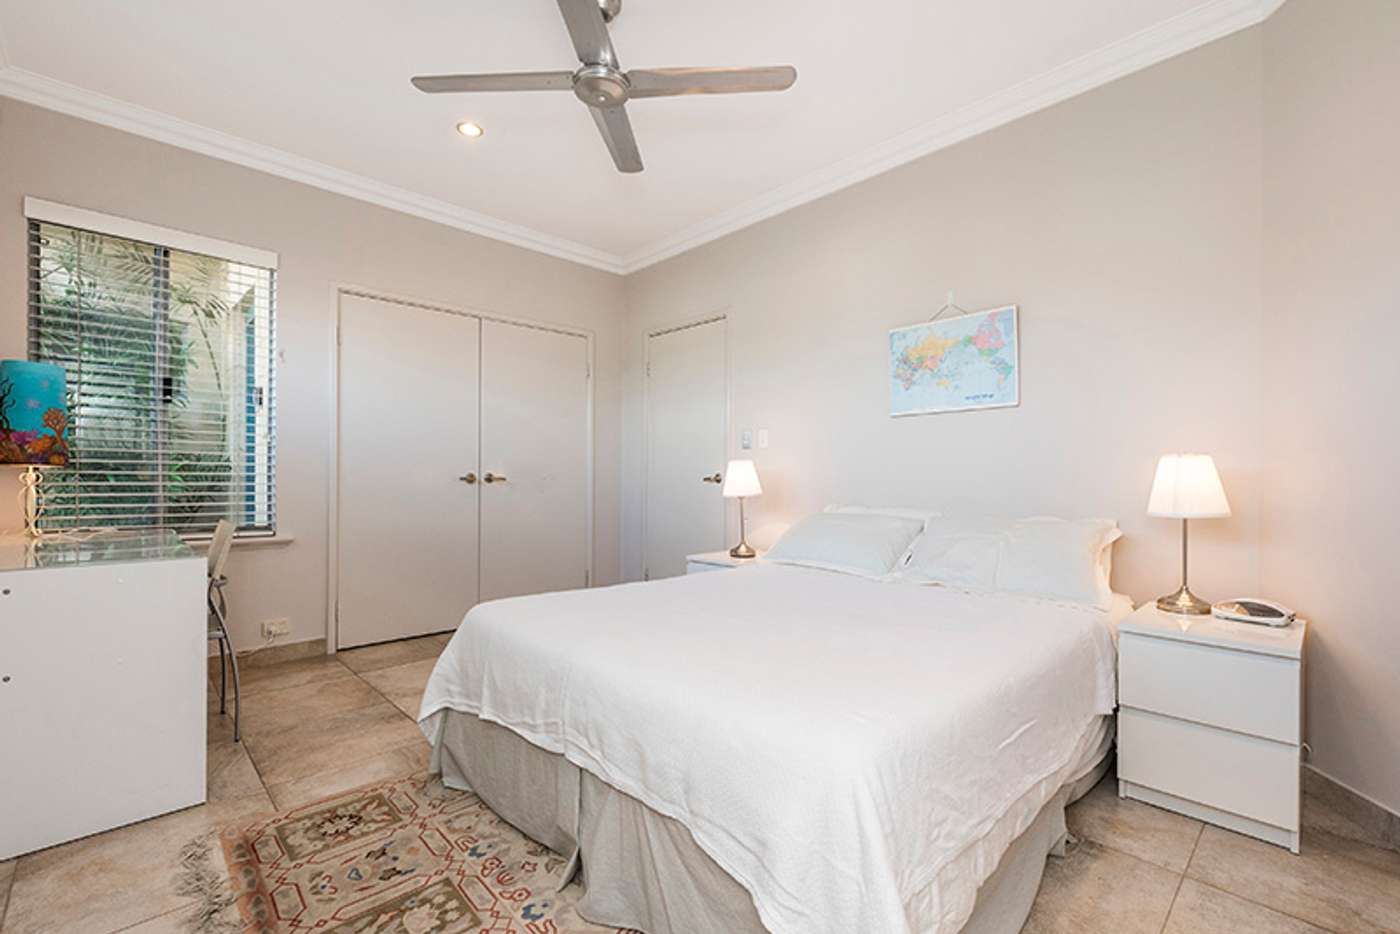 Main view of Homely apartment listing, 24 Macarthur Street, Cottesloe WA 6011